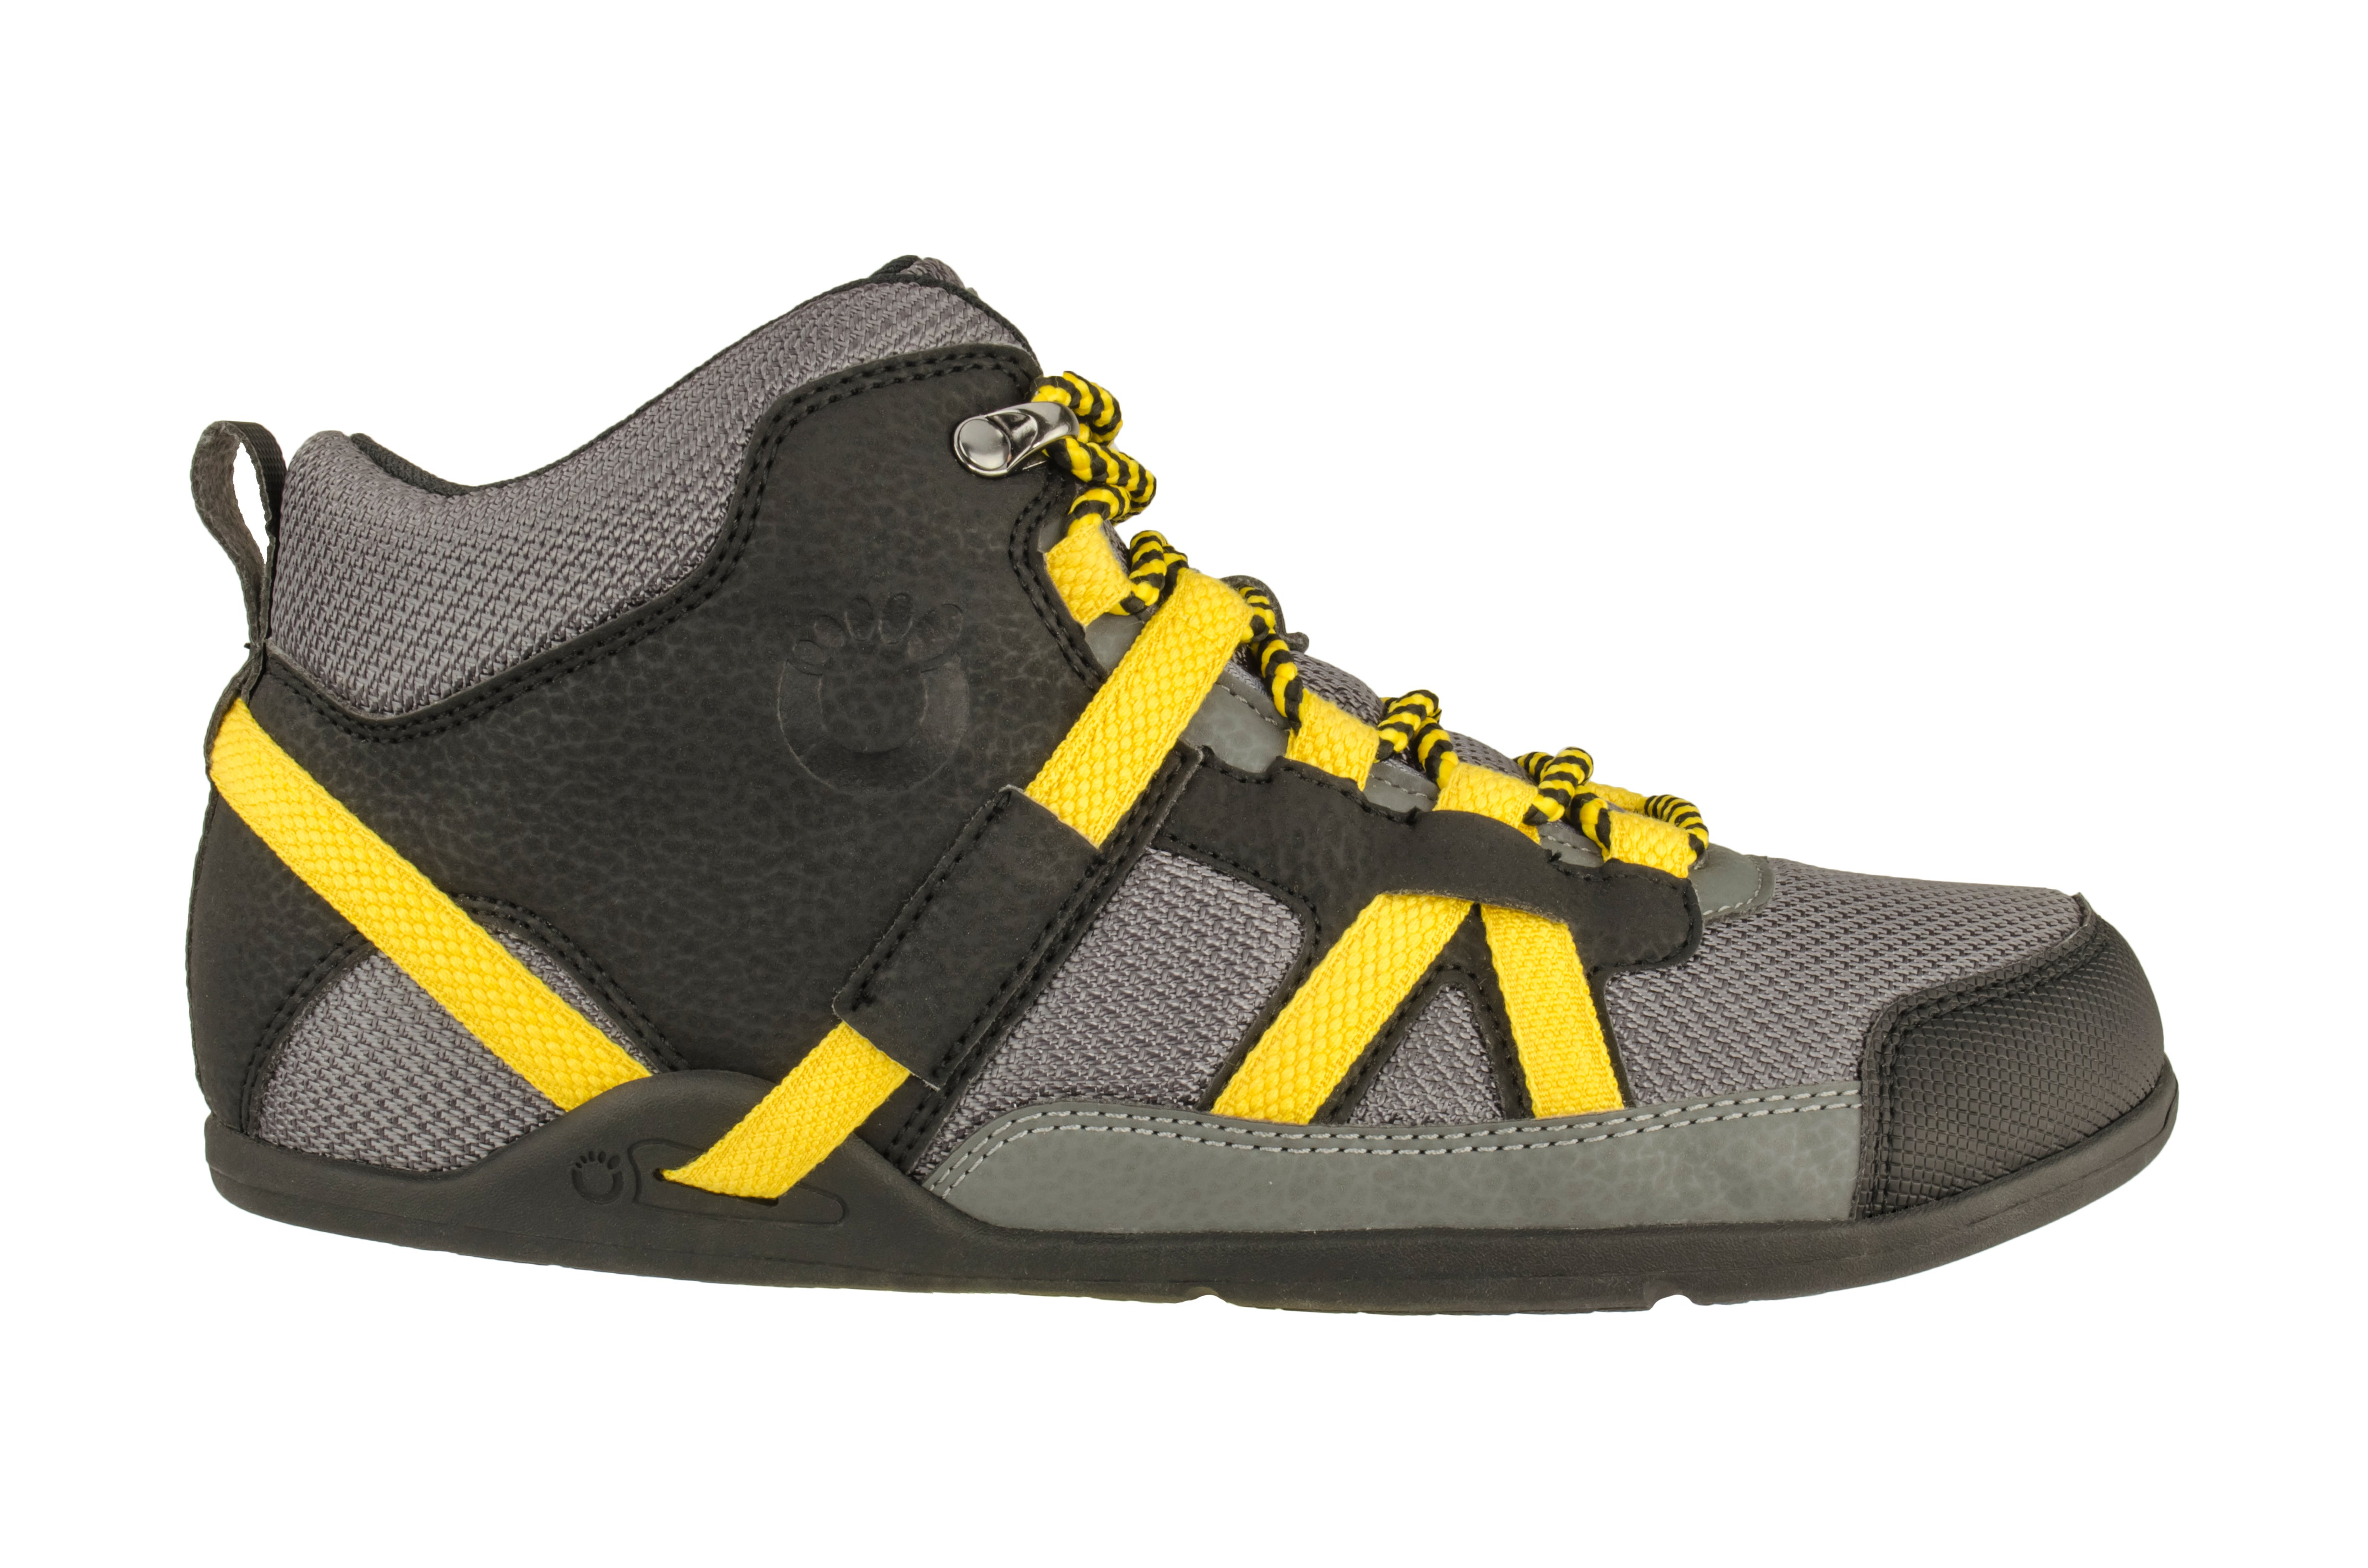 Lighter hiking shoe: DayLite Hiker from Xero Shoes